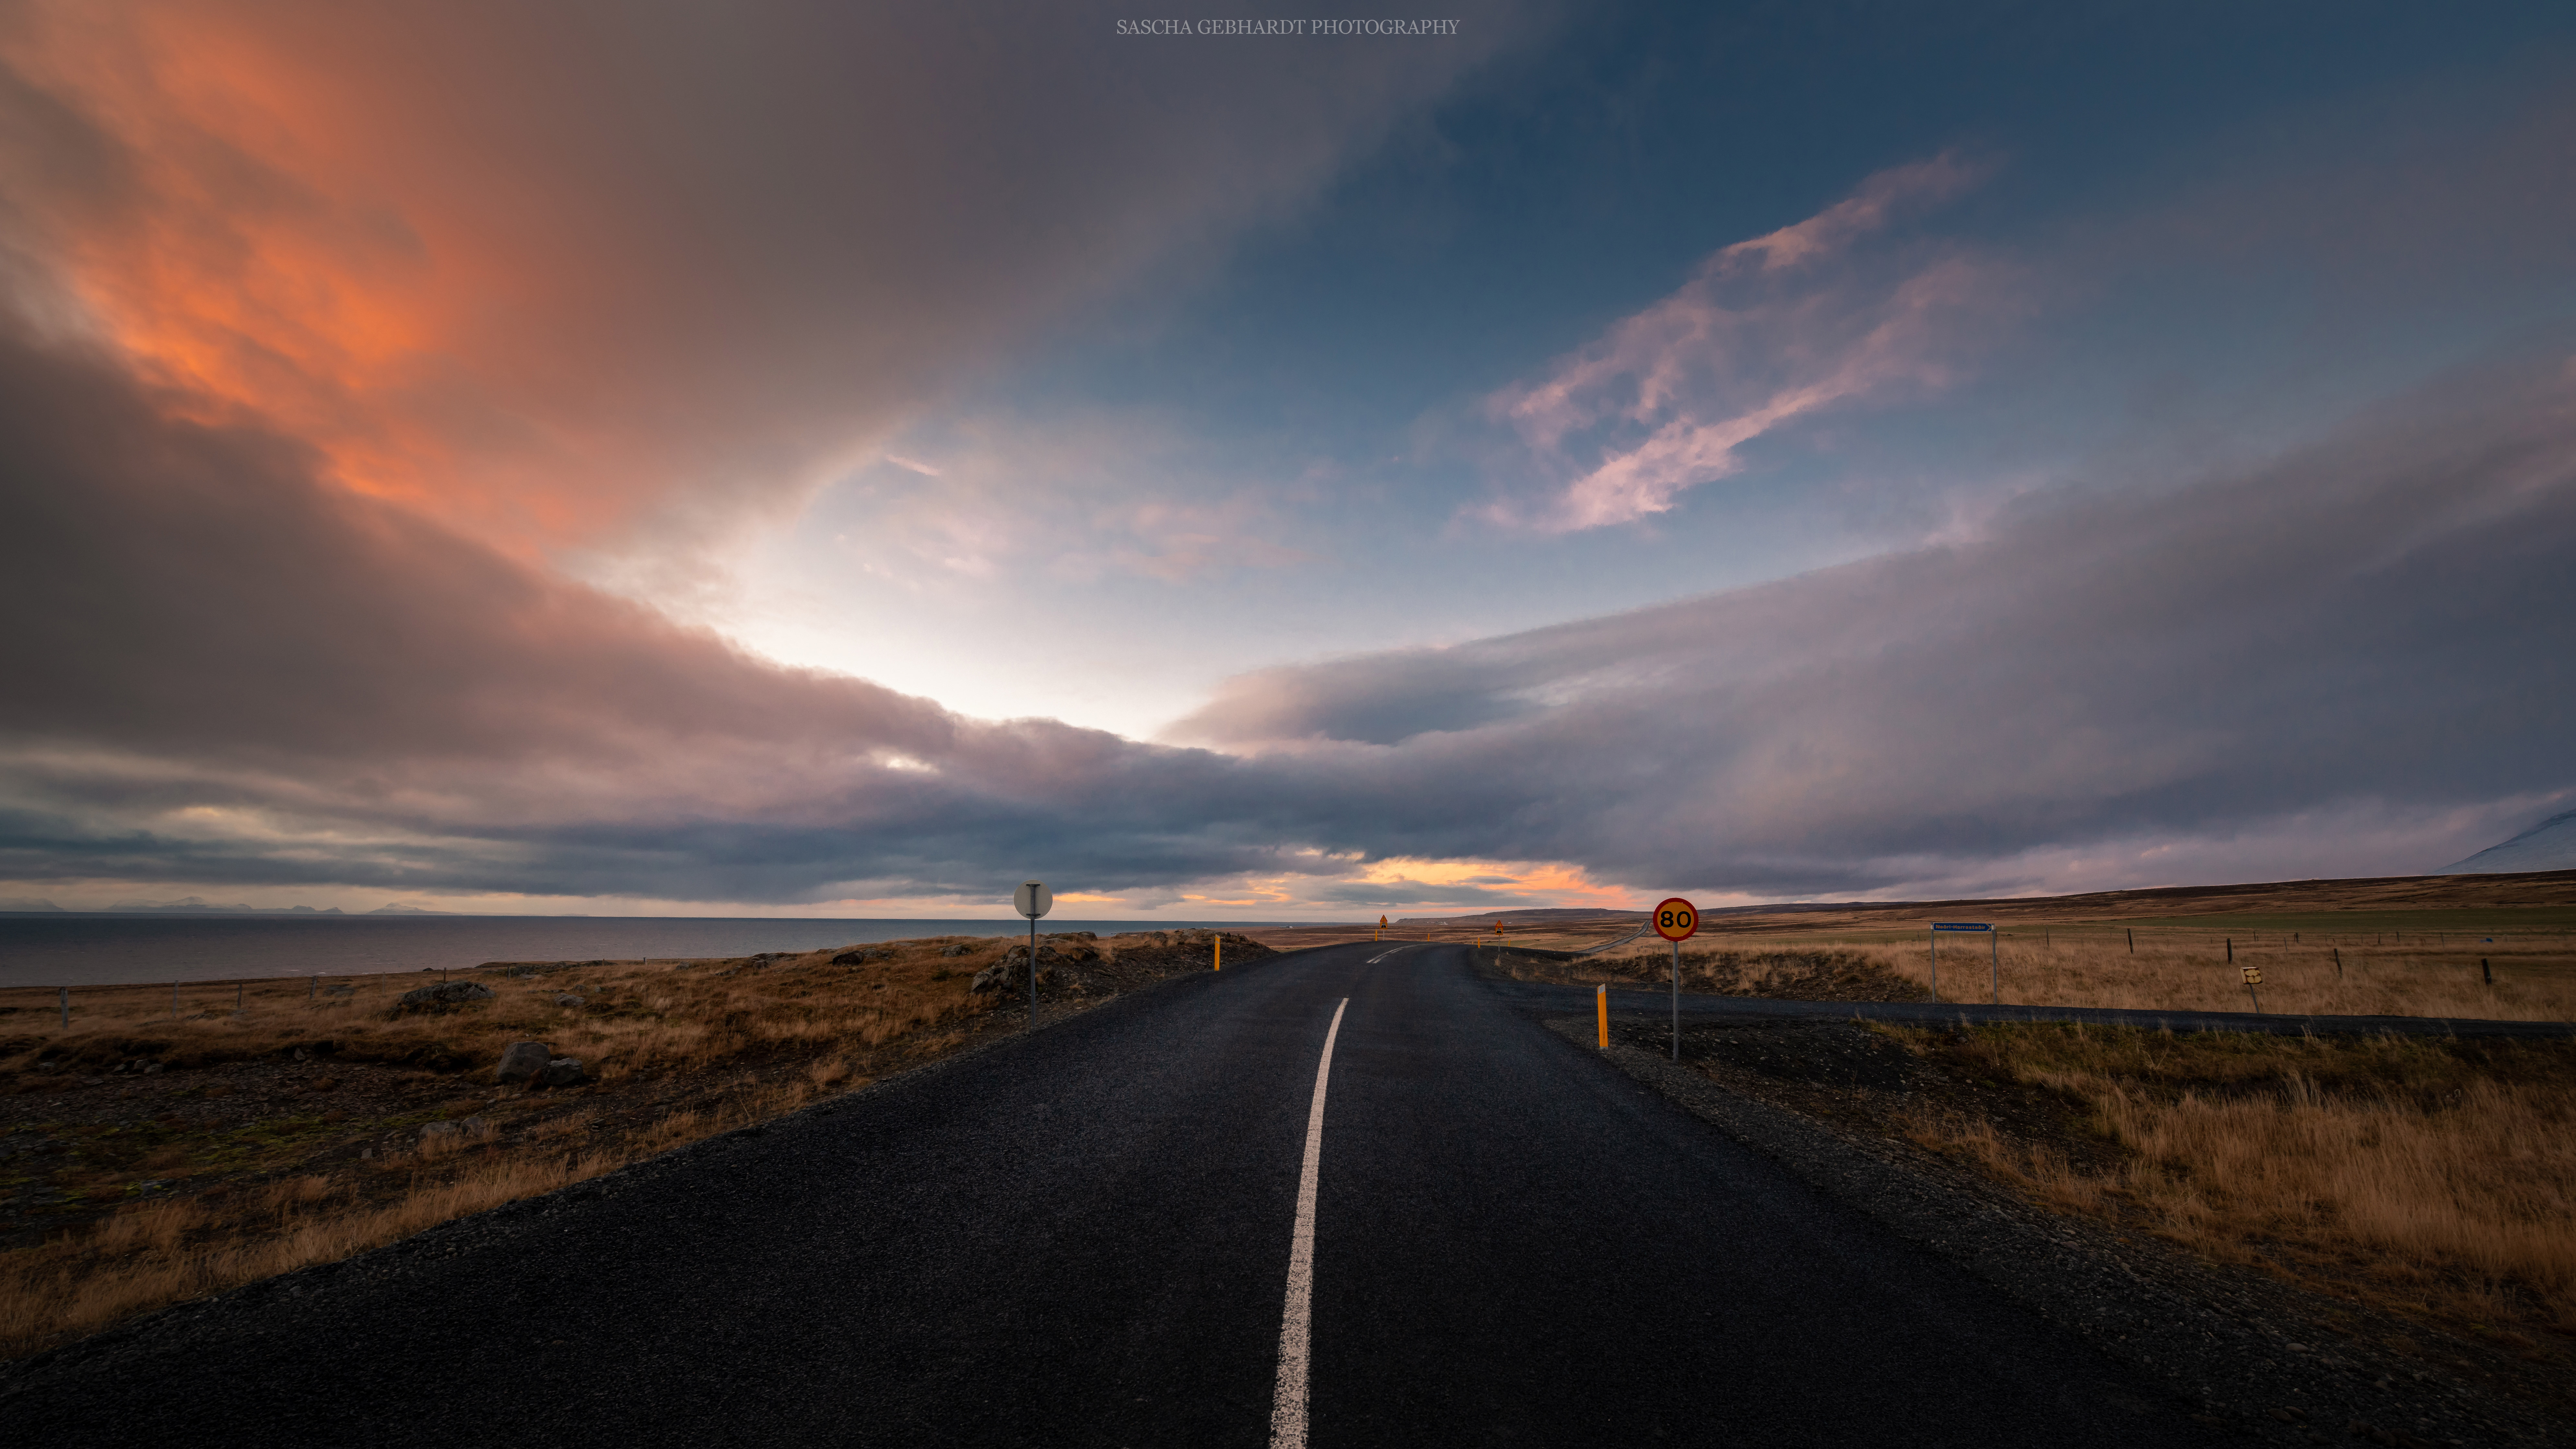 7680x4320 iceland sunset 8k 8k hd 4k wallpapers images backgrounds photos and pictures - 4k wallpaper download ...